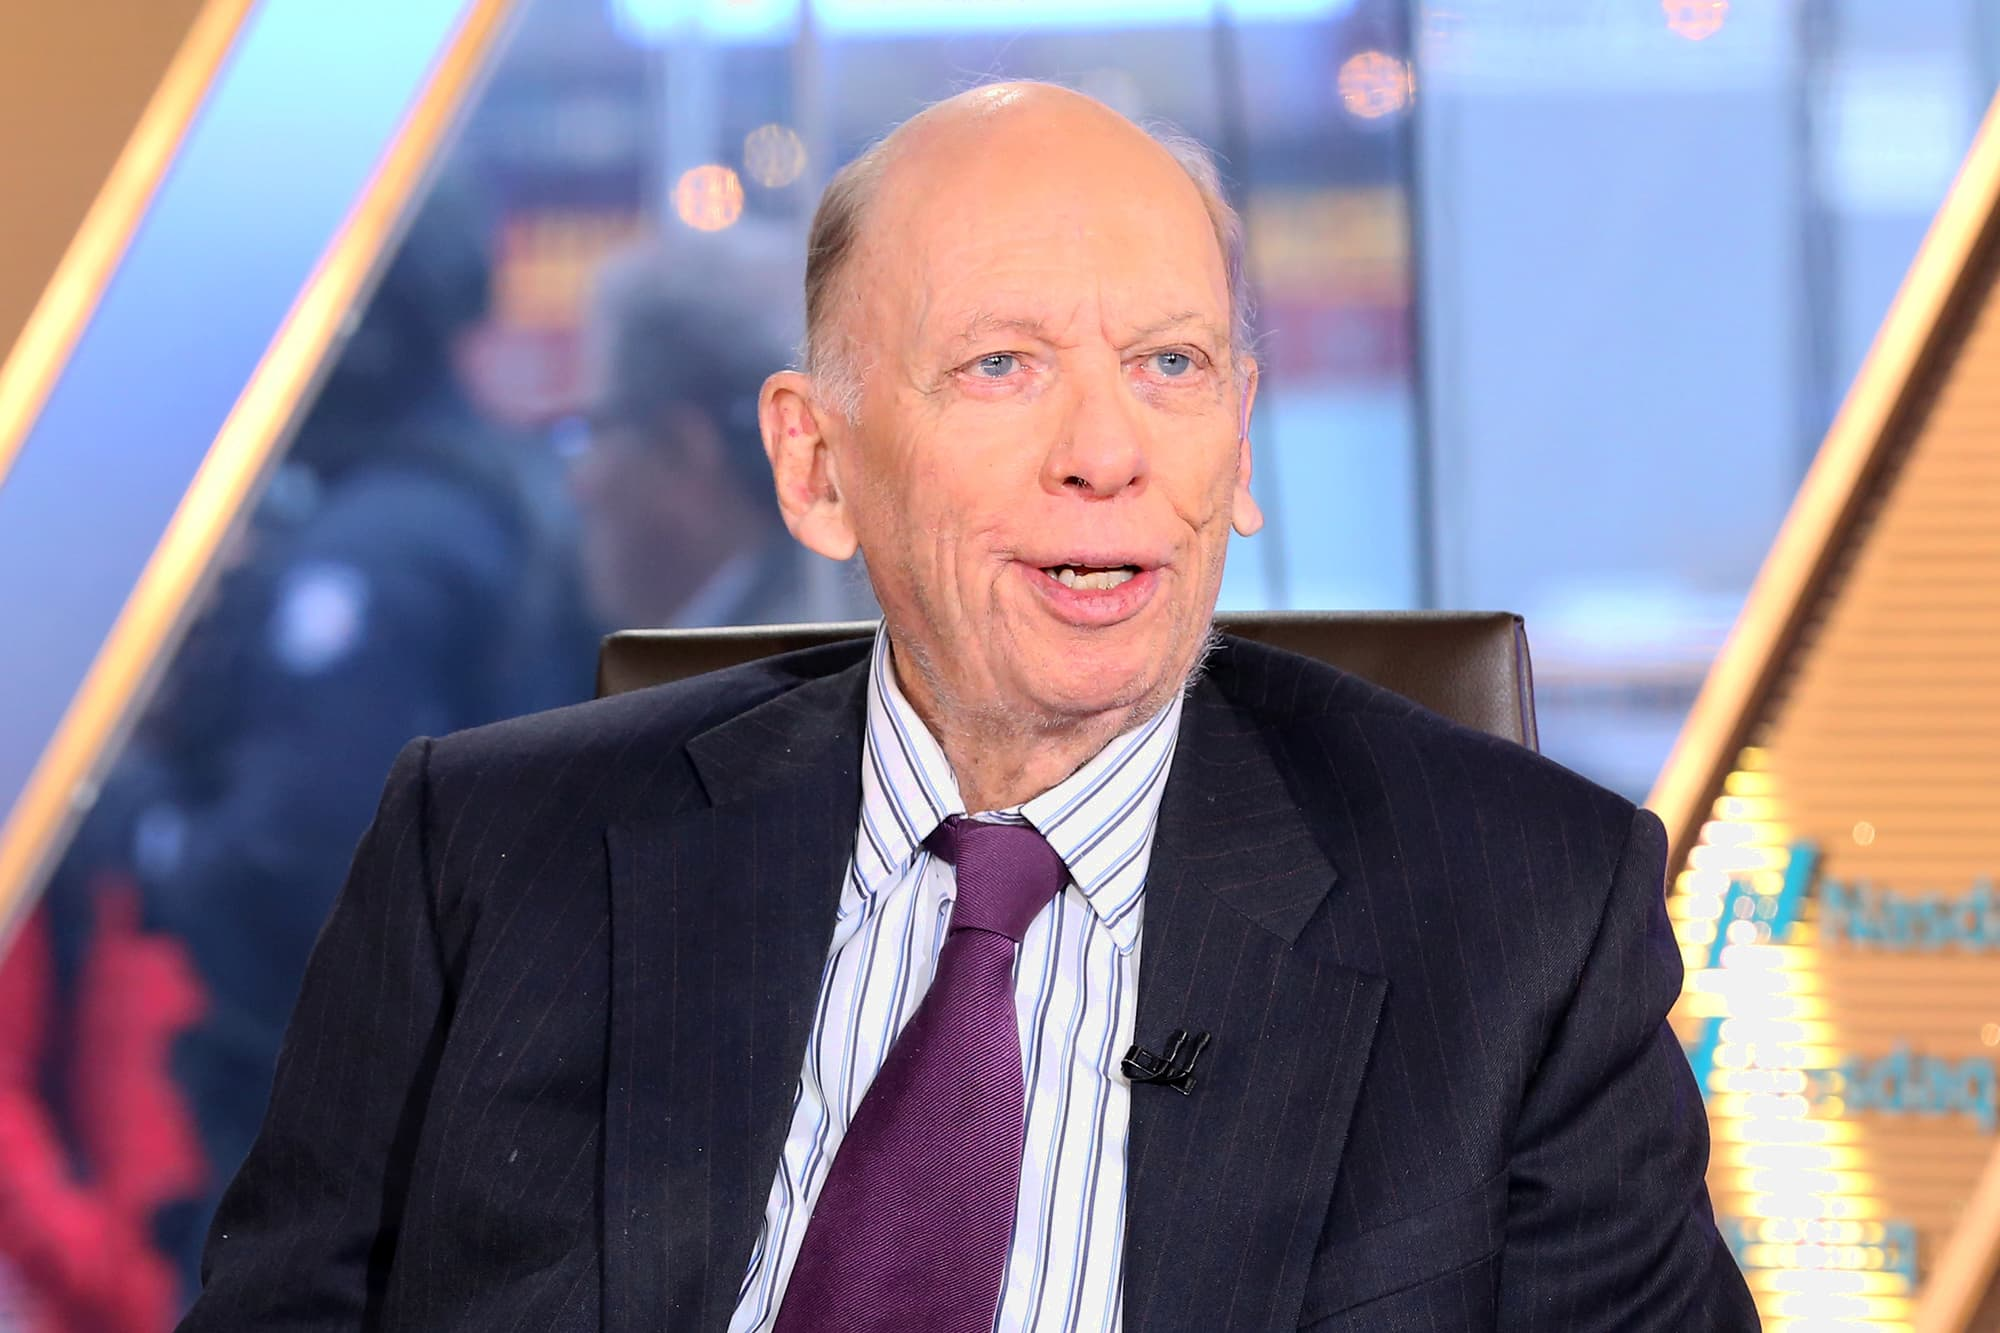 Blackstone's Byron Wien says stocks have 'room to move up' and this is 'nothing like 2006 or 1999'